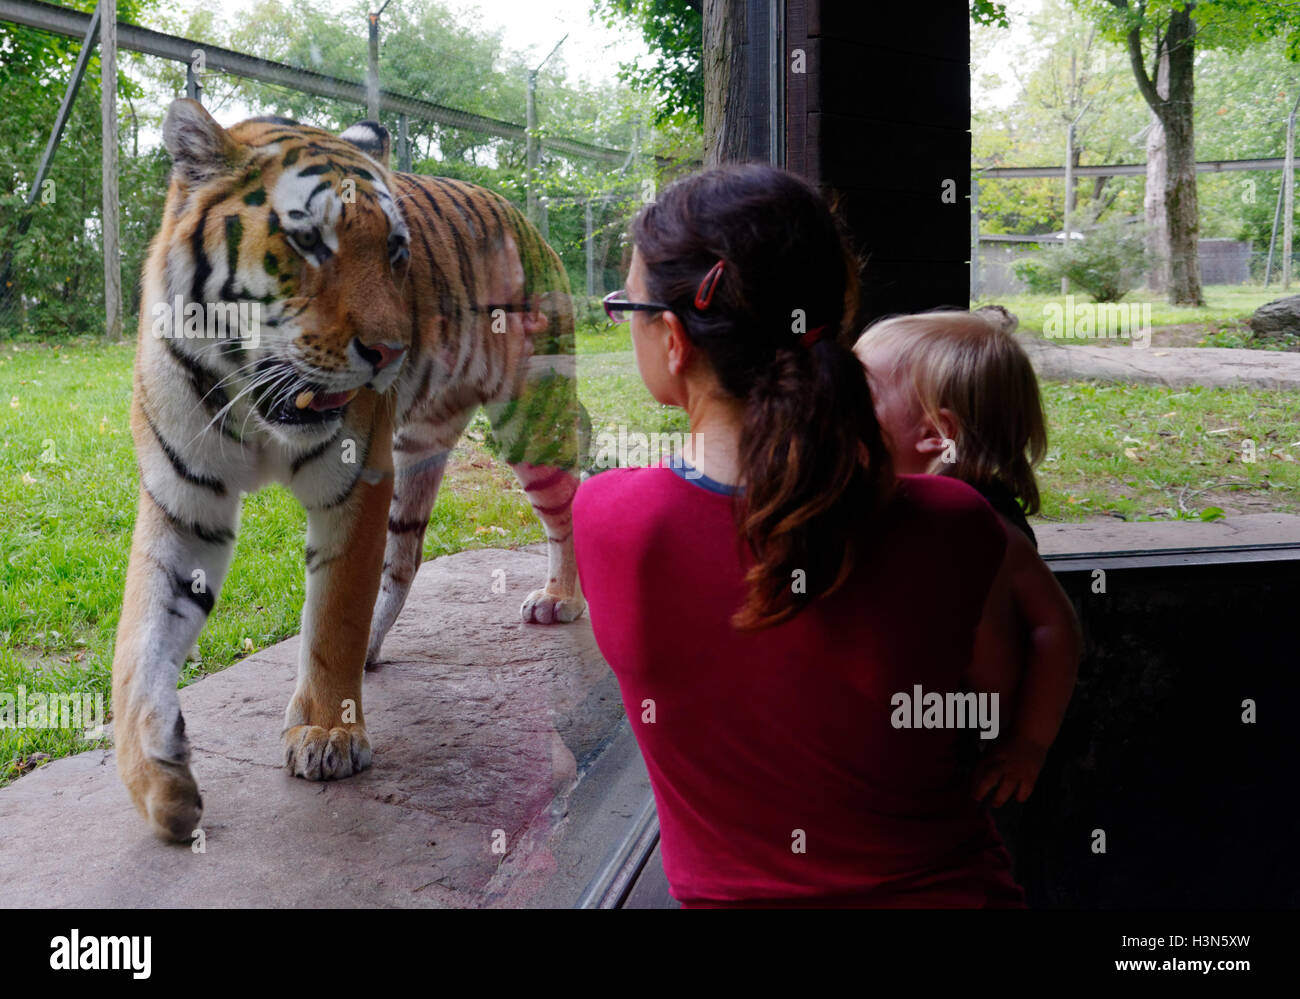 the-siberian-tiger-in-granby-zoo-looking